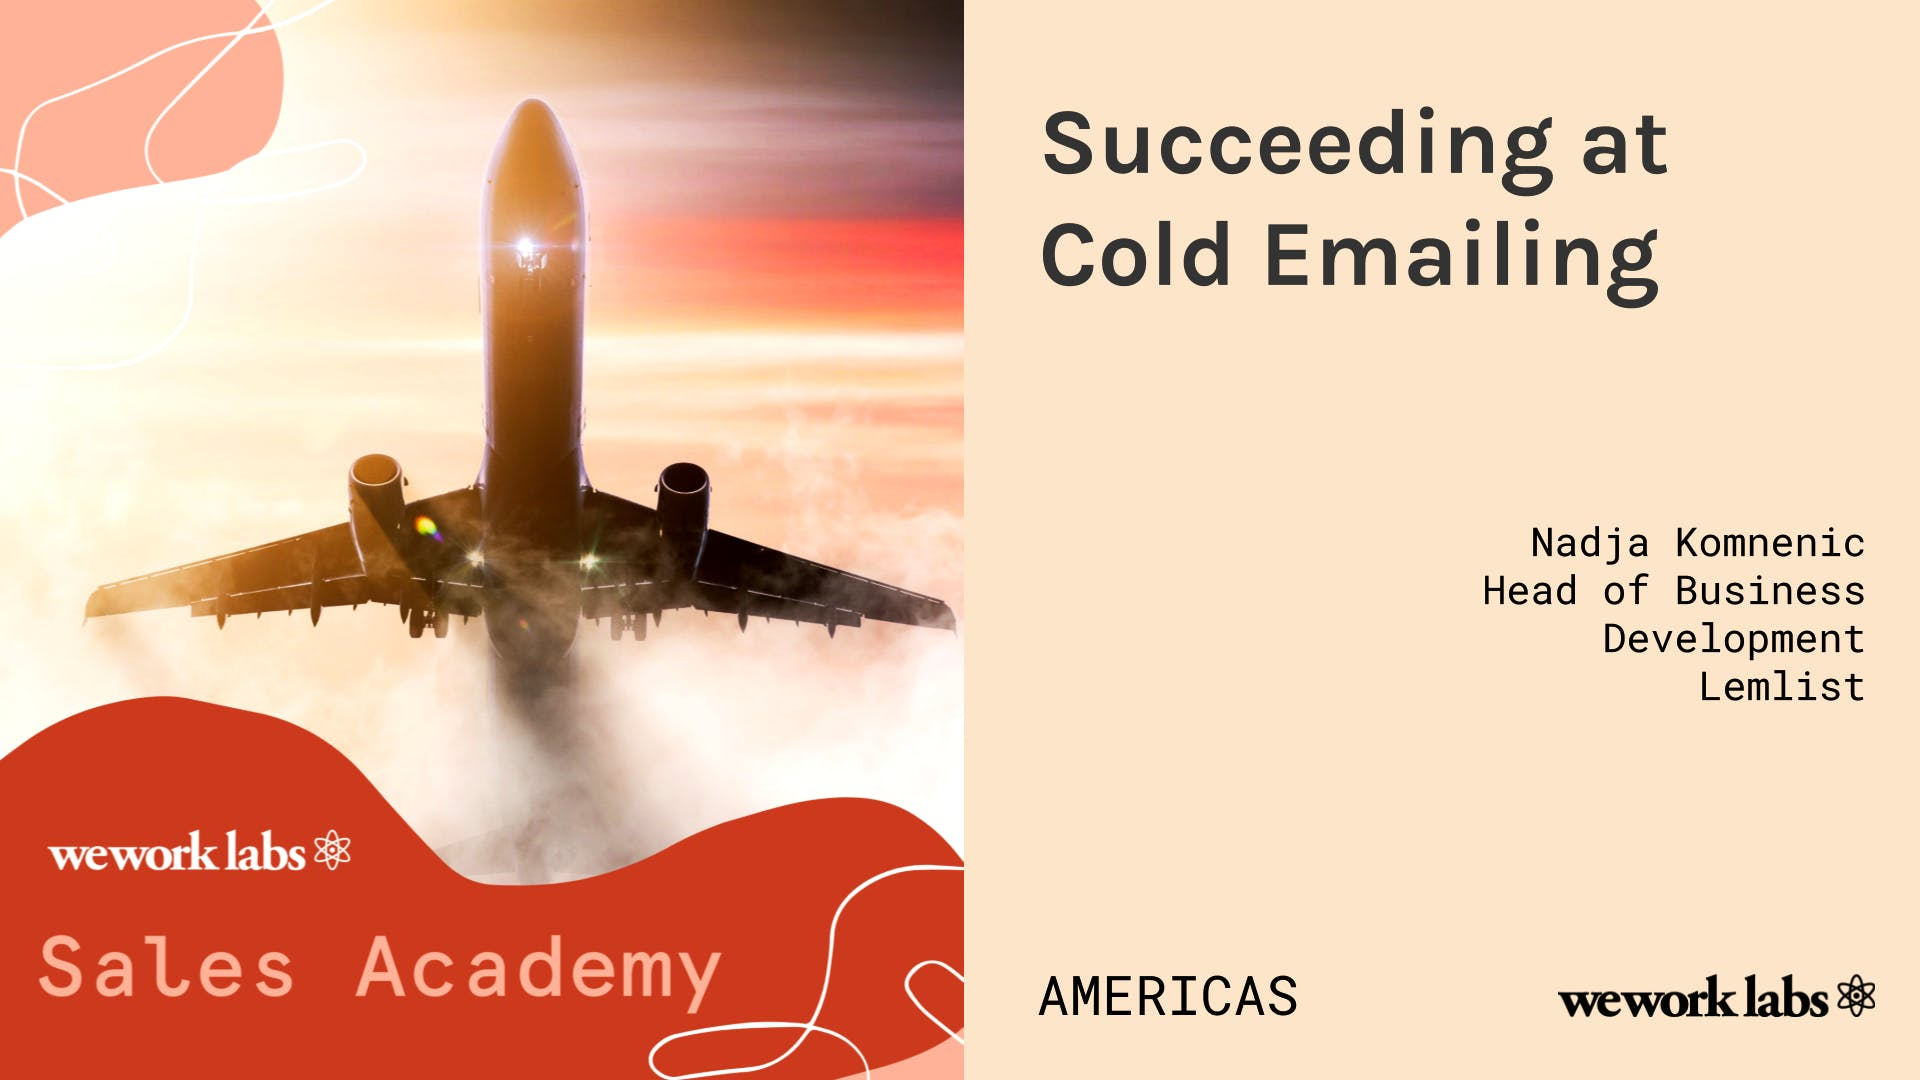 Sales Academy (Americas): Succeeding at Cold Emailing